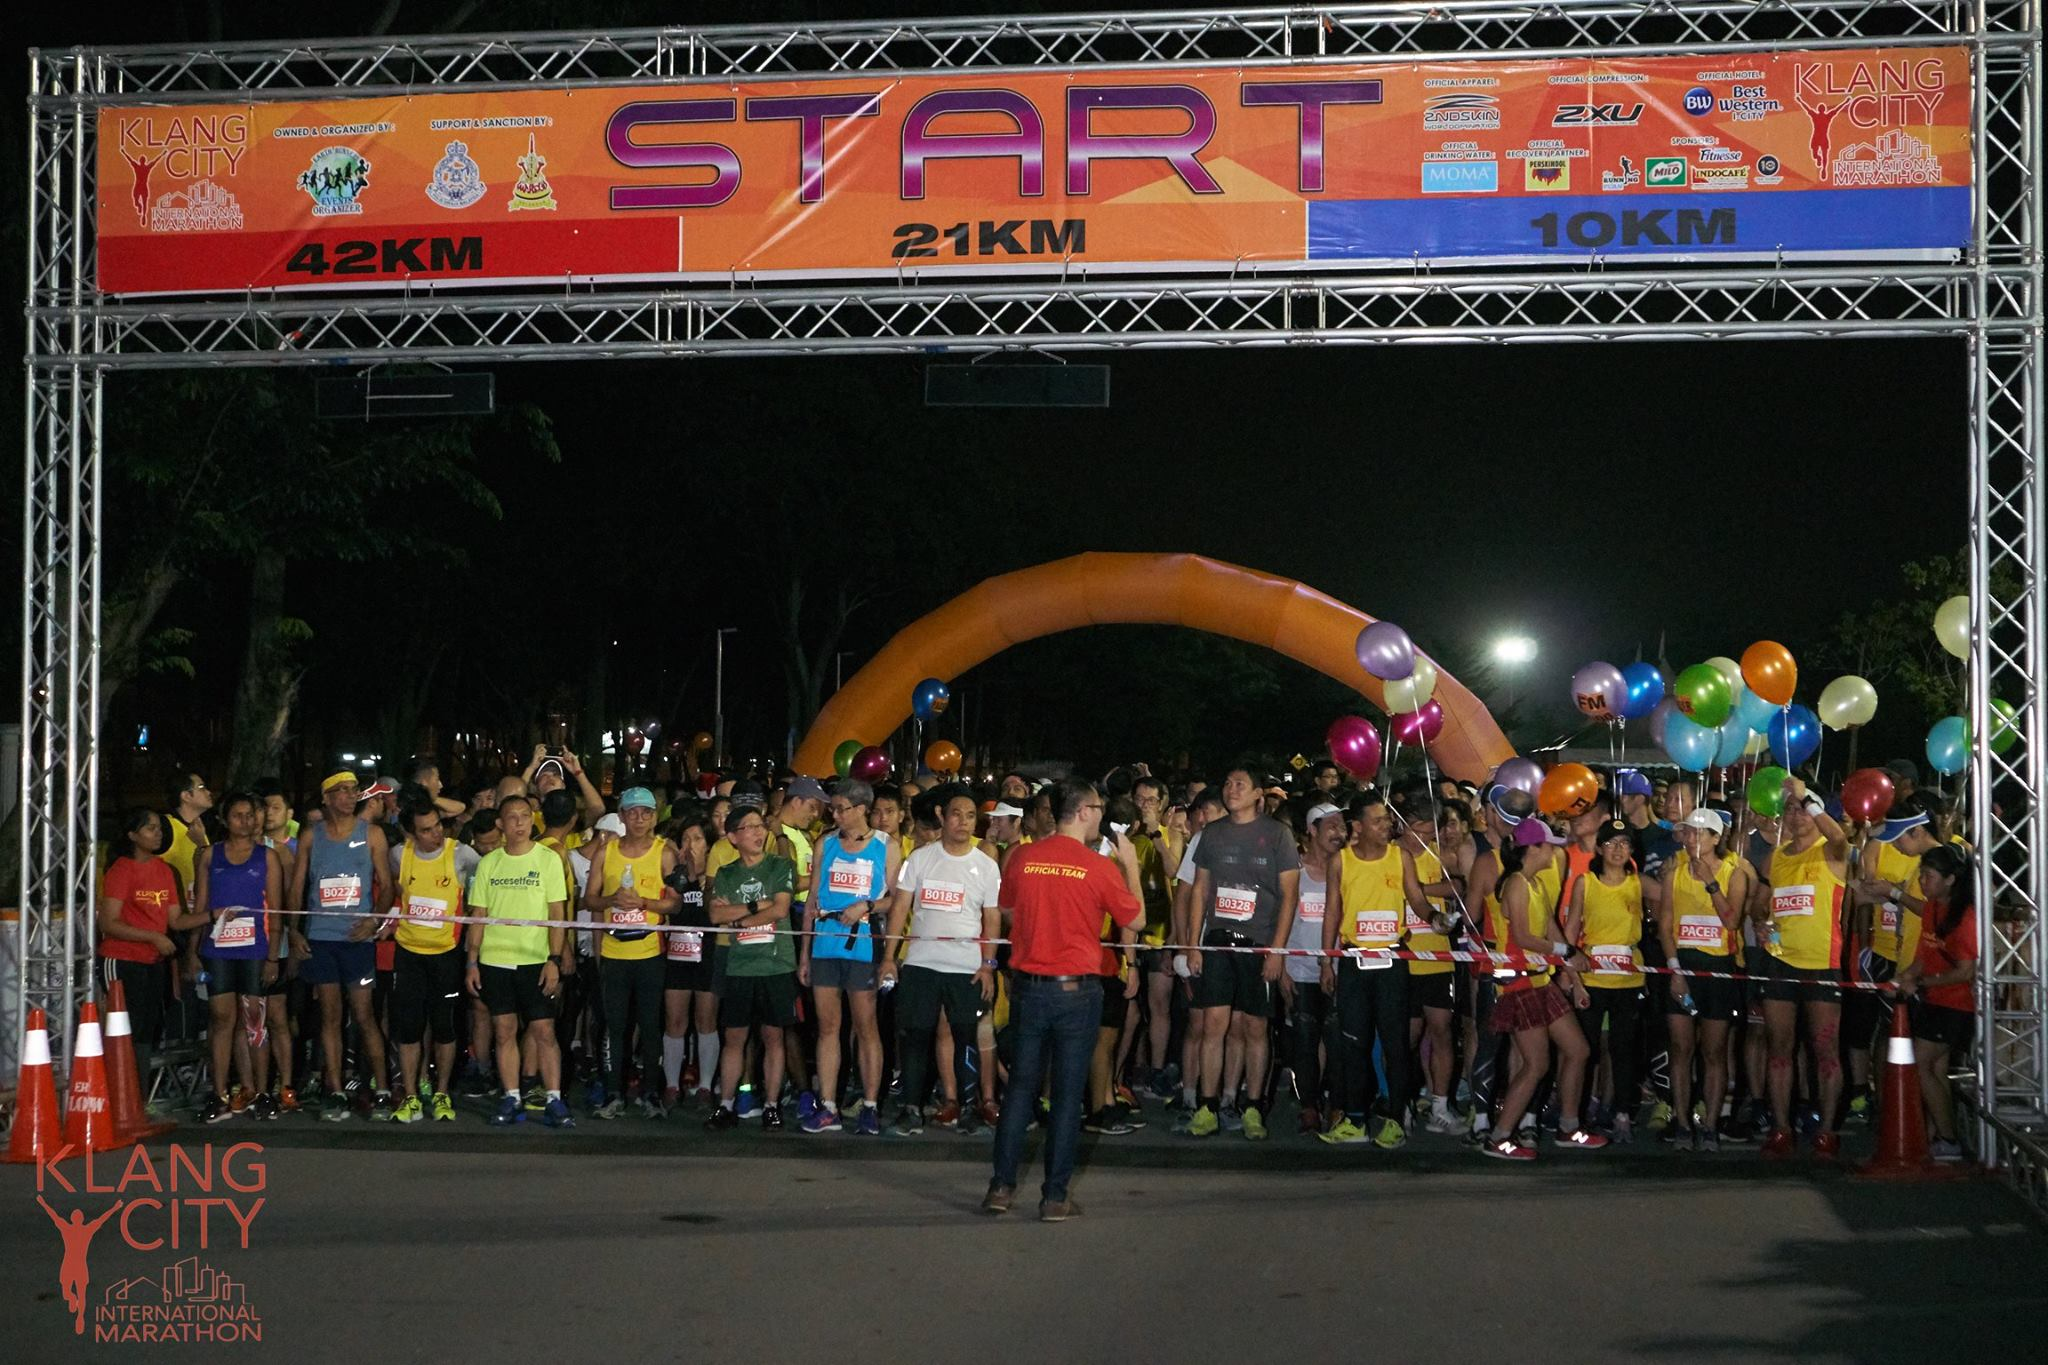 Image from Klang City International Marathon/Facebook